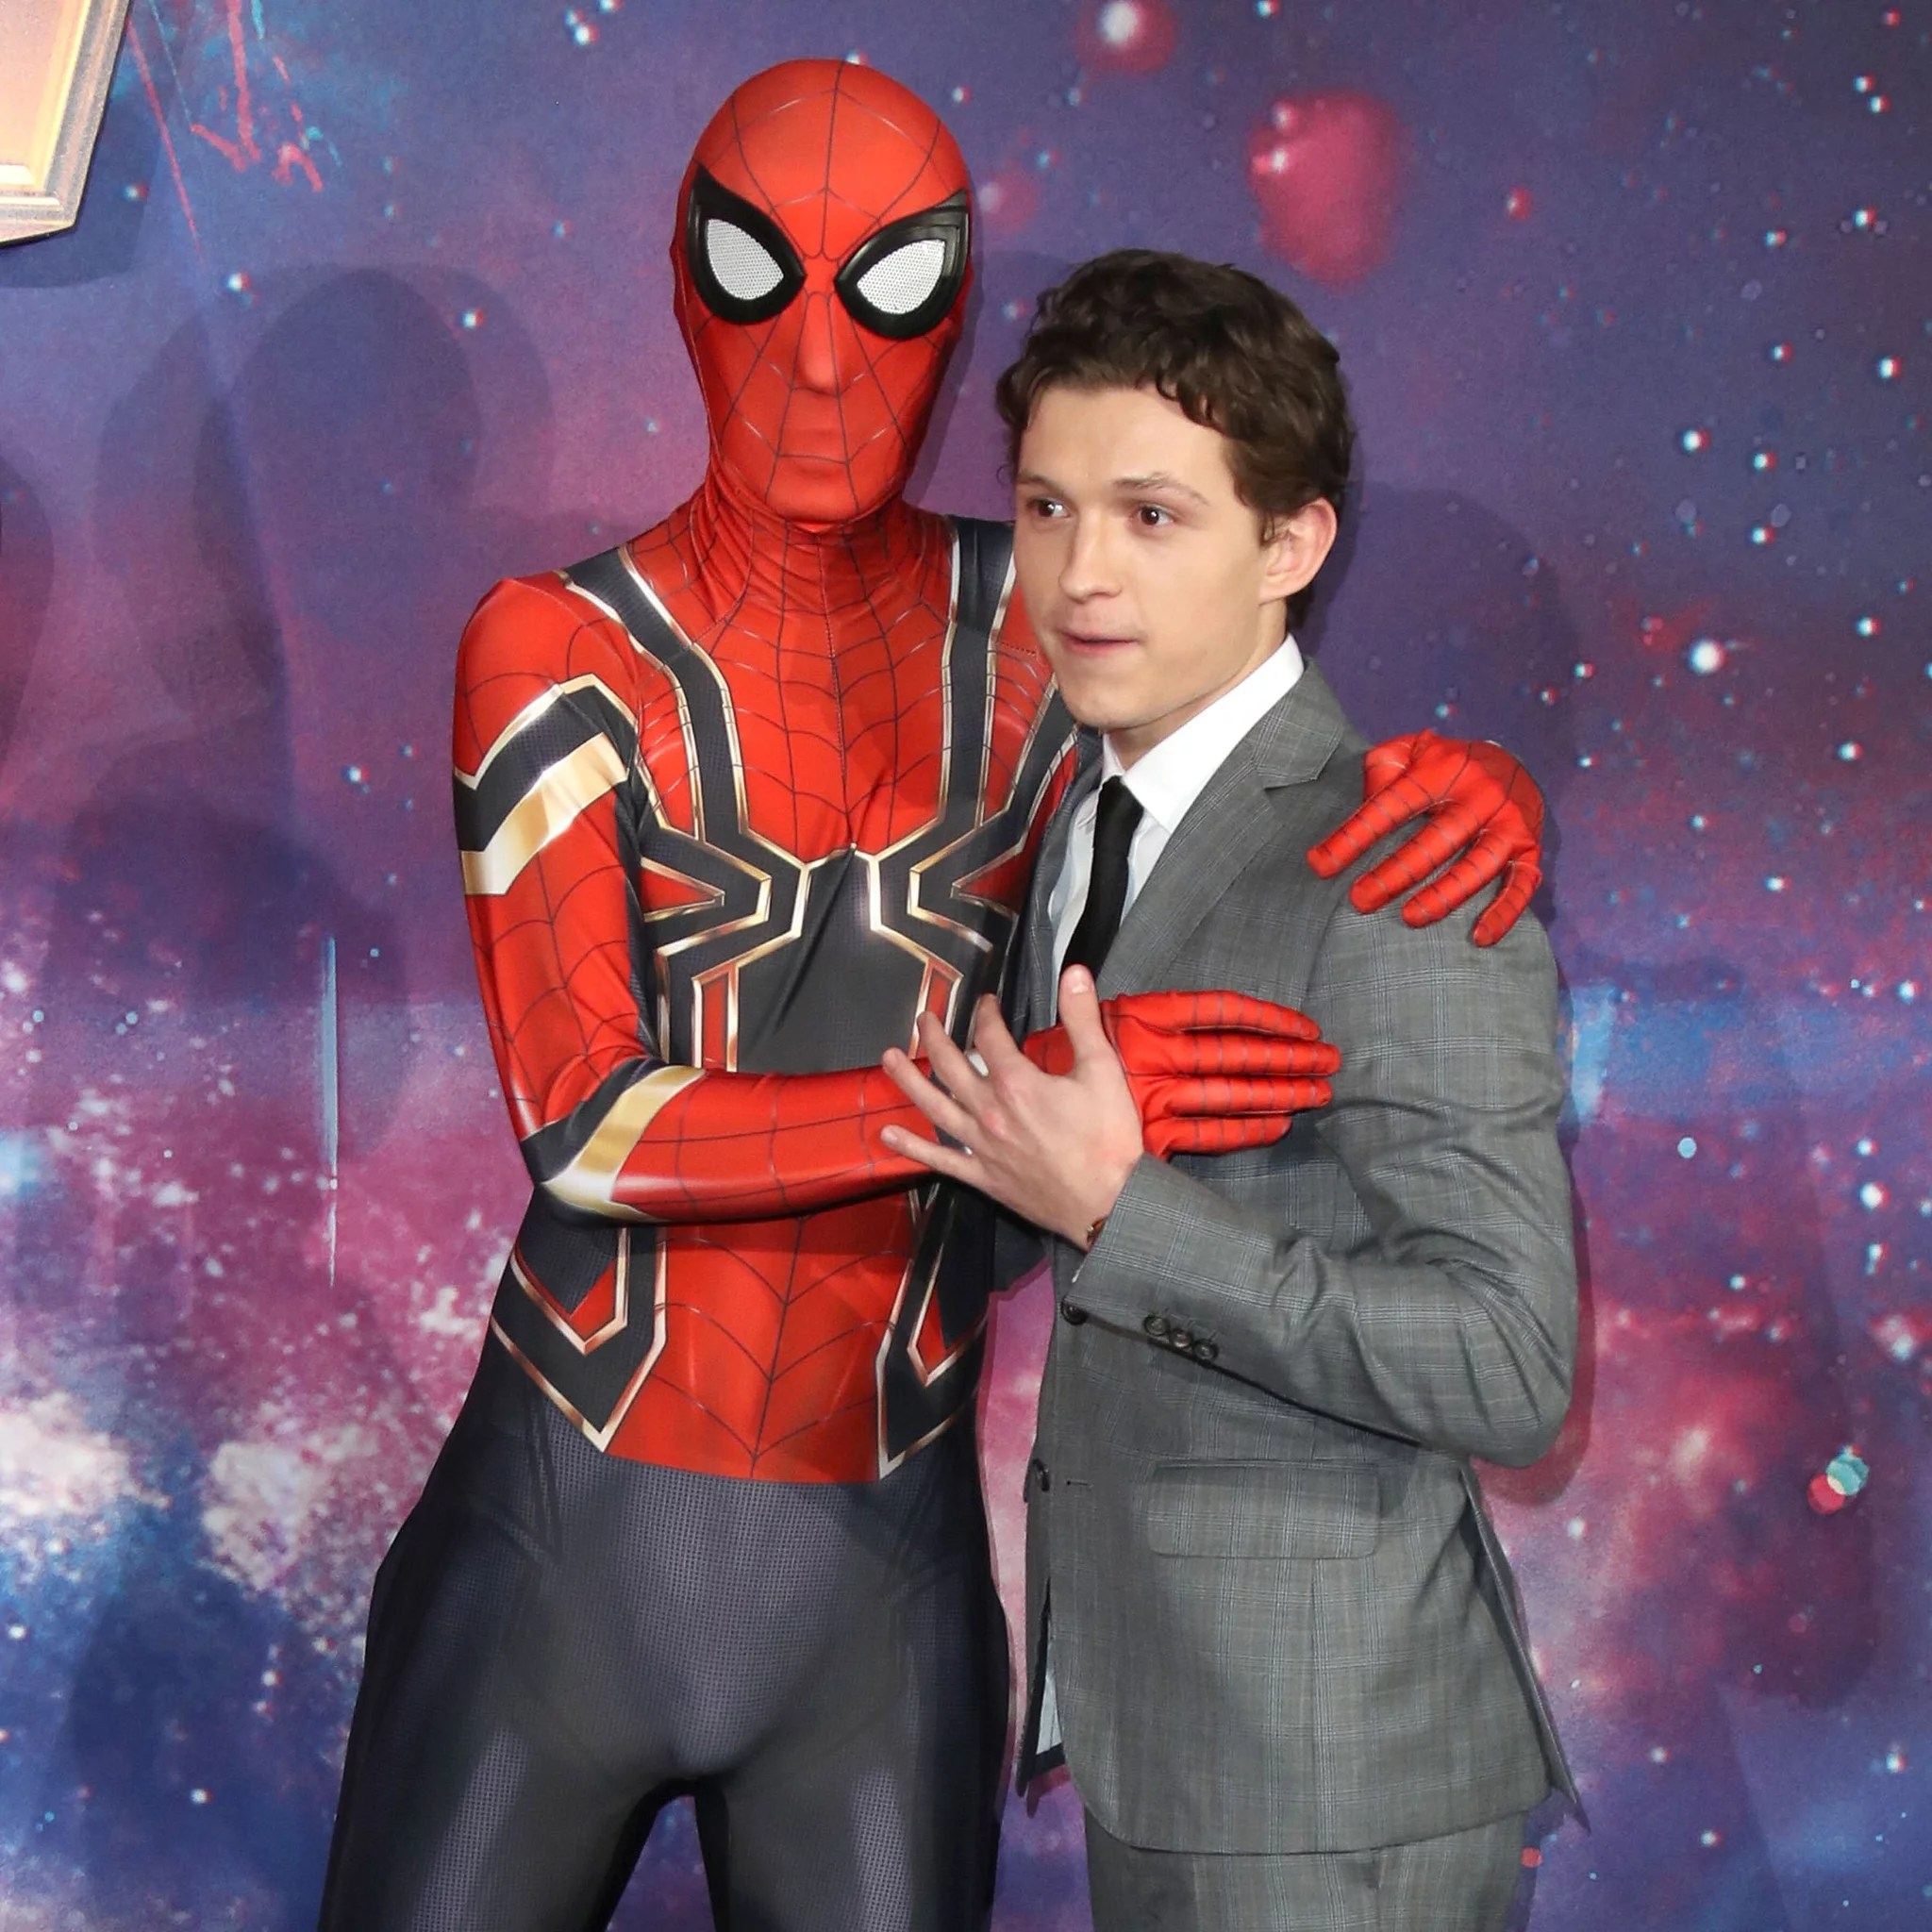 Tom Holland on Avengers  Infinity War Press Tour   POPSUGAR Celebrity